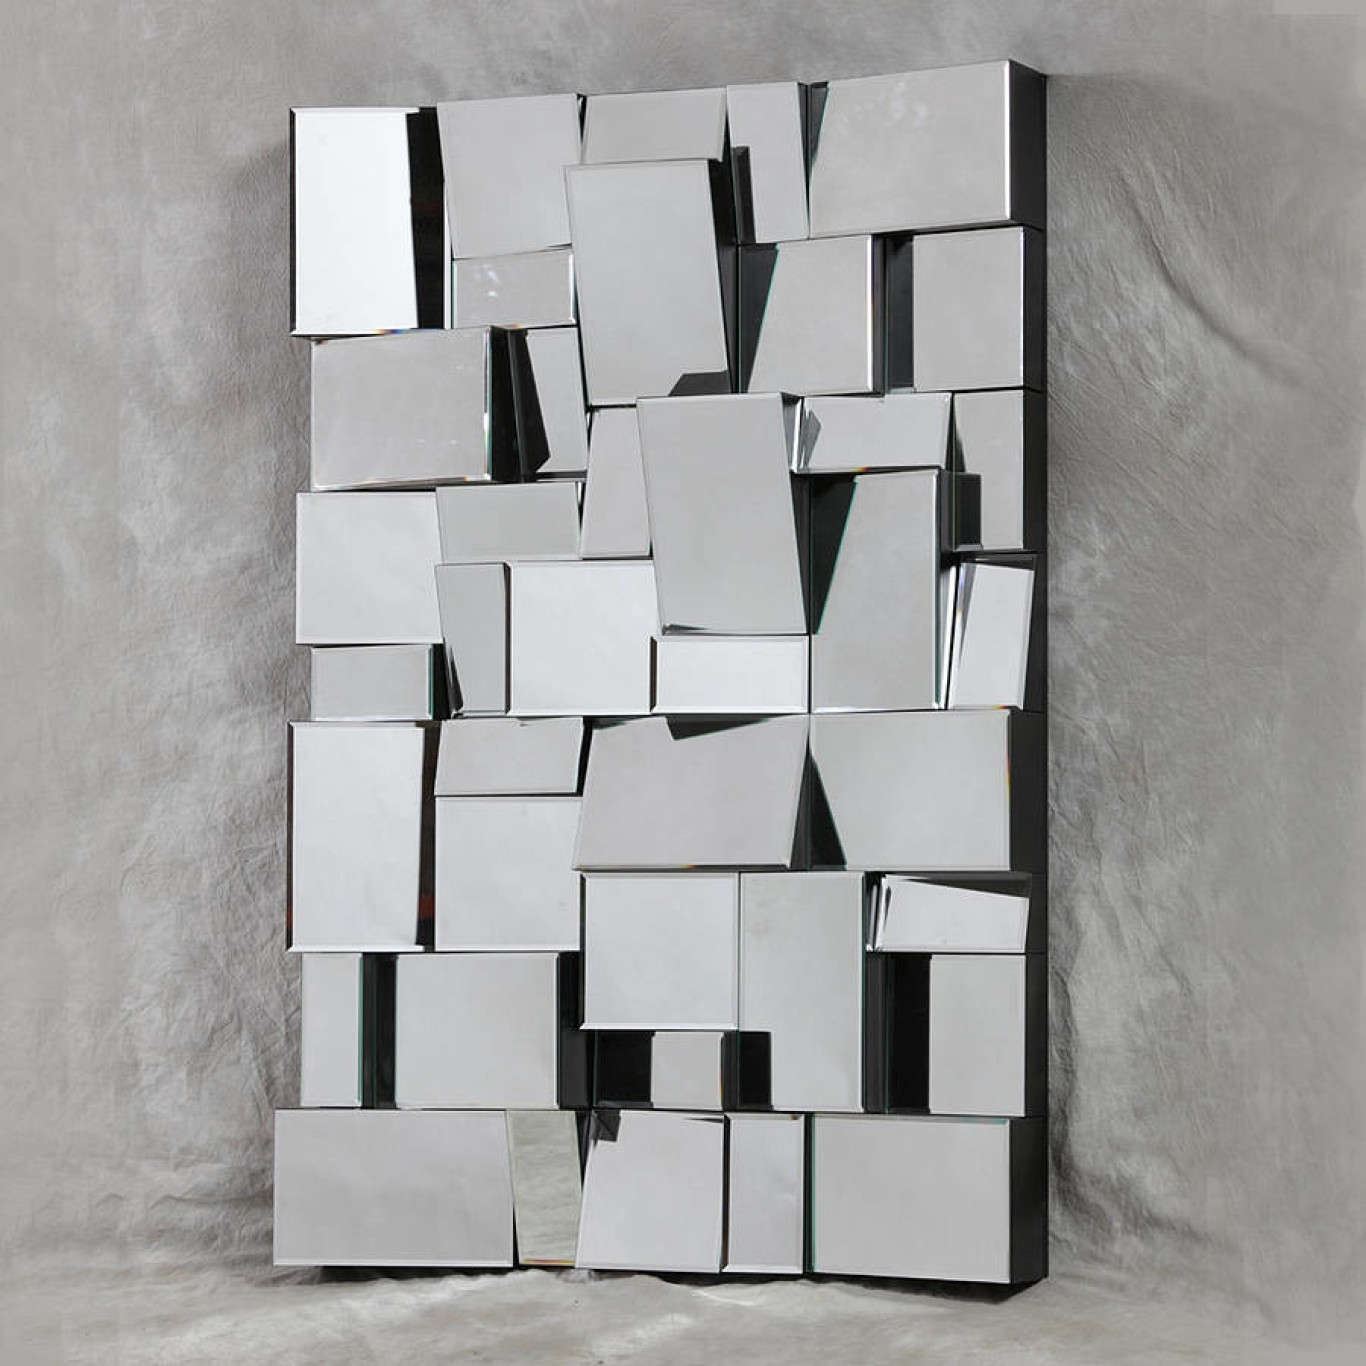 Mirrors As Wall Superb Mirrored Wall Art – Prix Dalle Beton Throughout Current Mirrored Wall Art (Gallery 7 of 20)